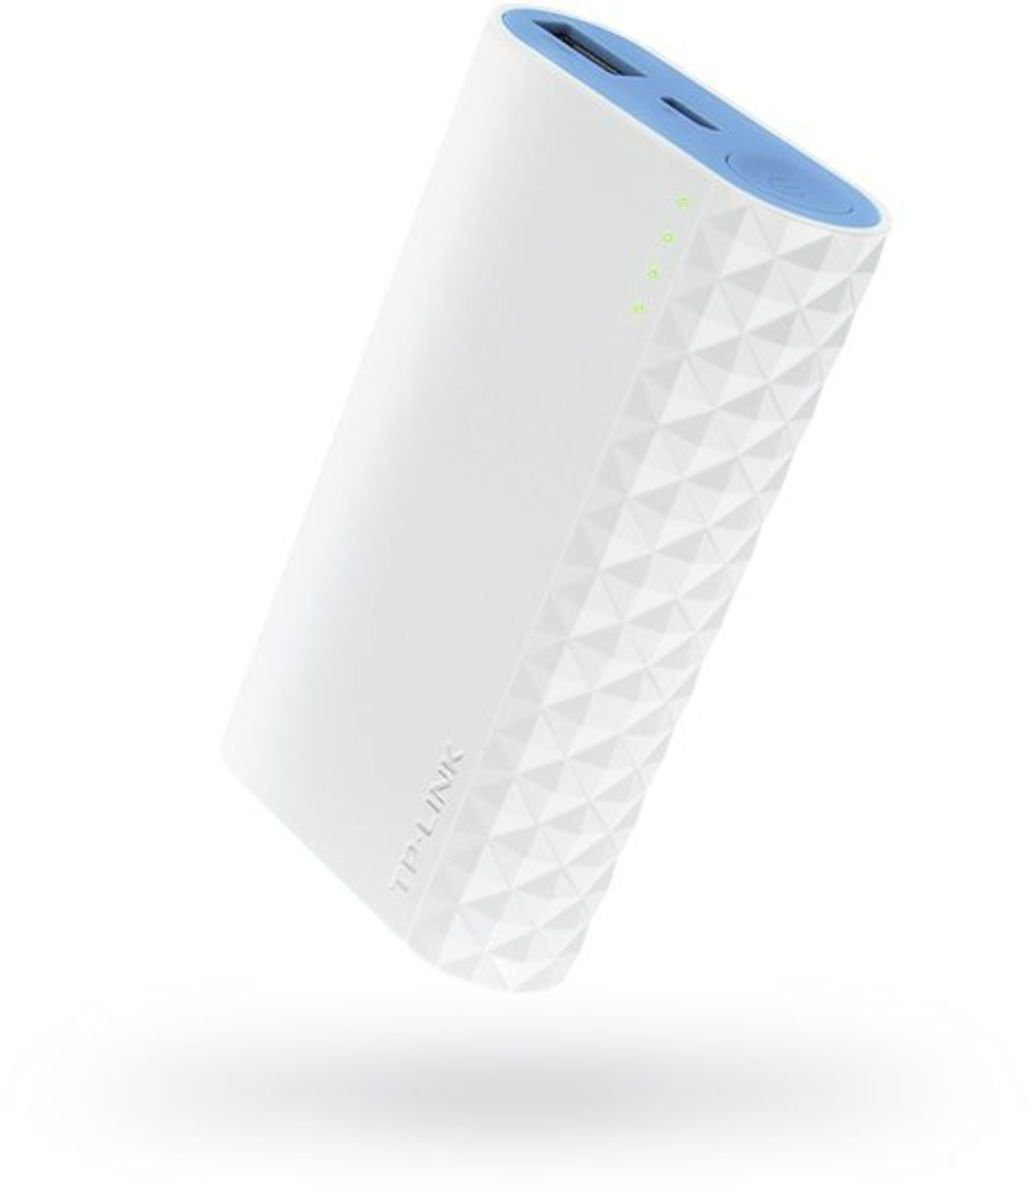 TP-Link Lader »TL-PB5200 5200mAh Power Bank«